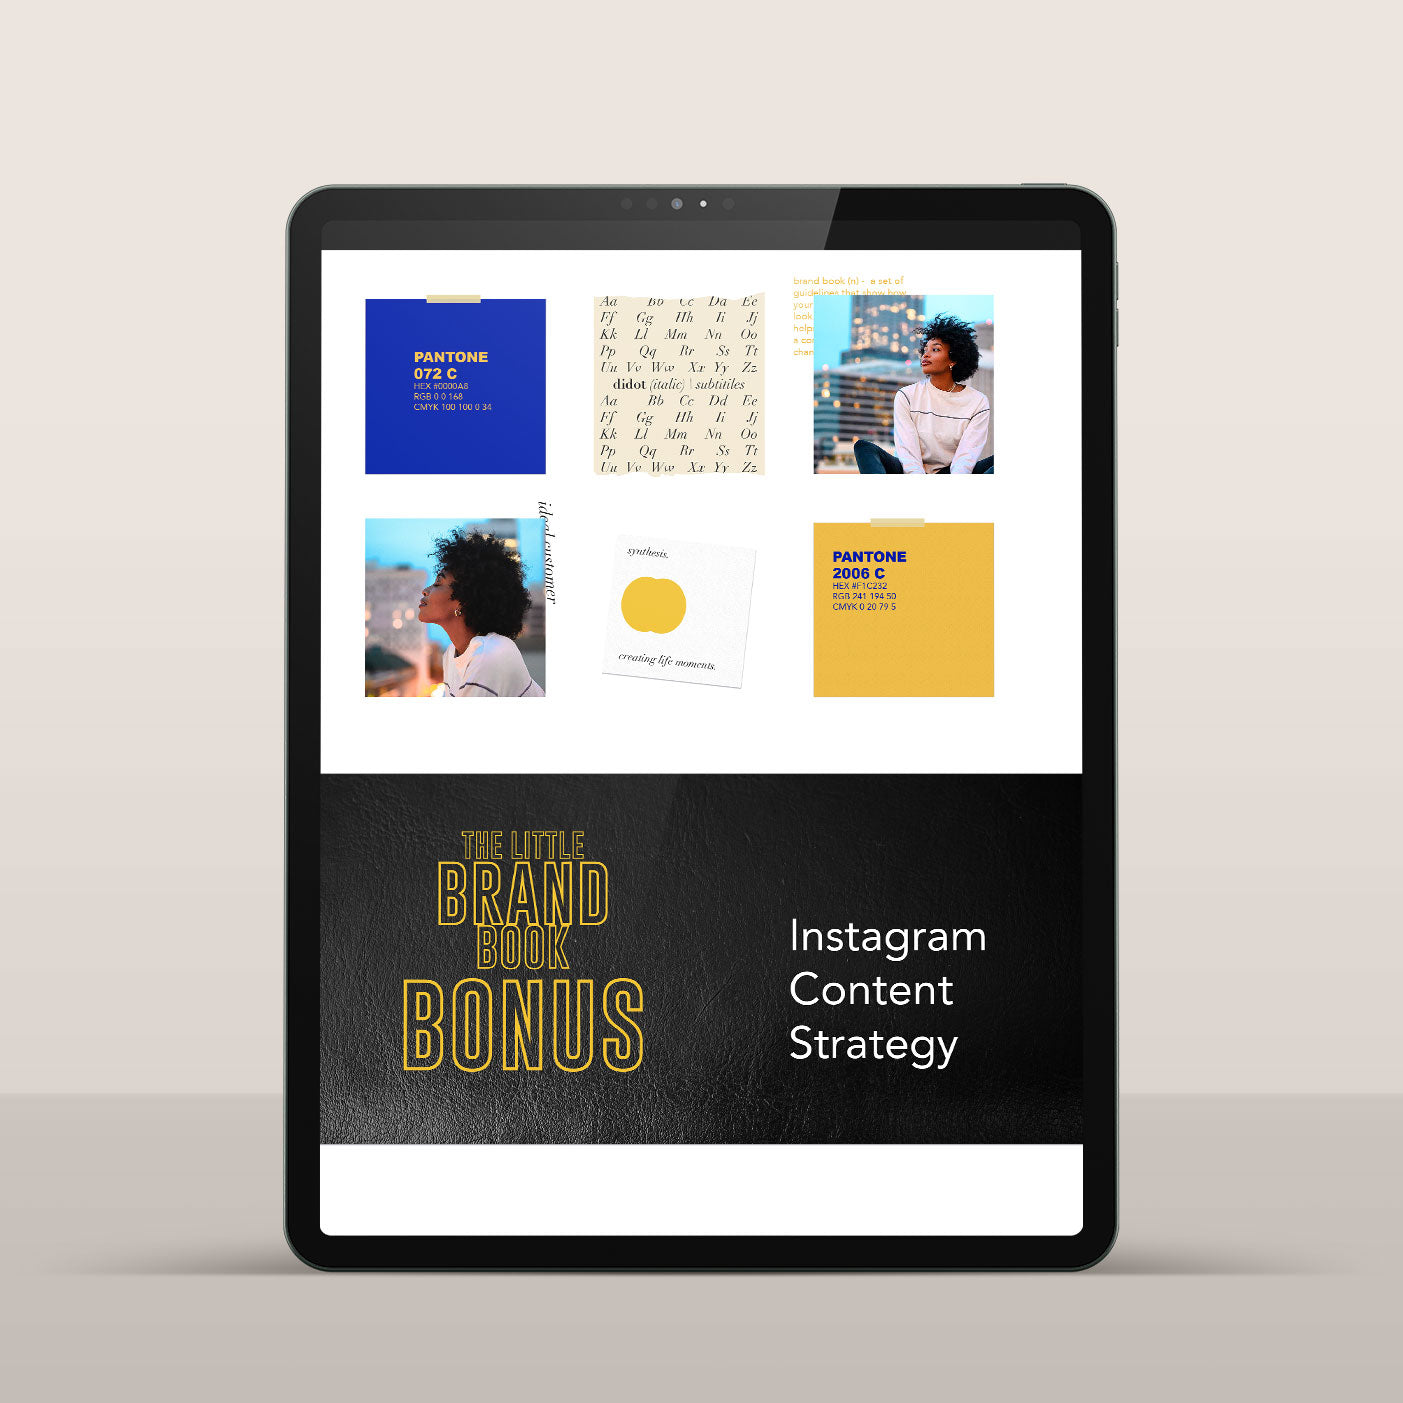 Instagram Content Strategy Ebook